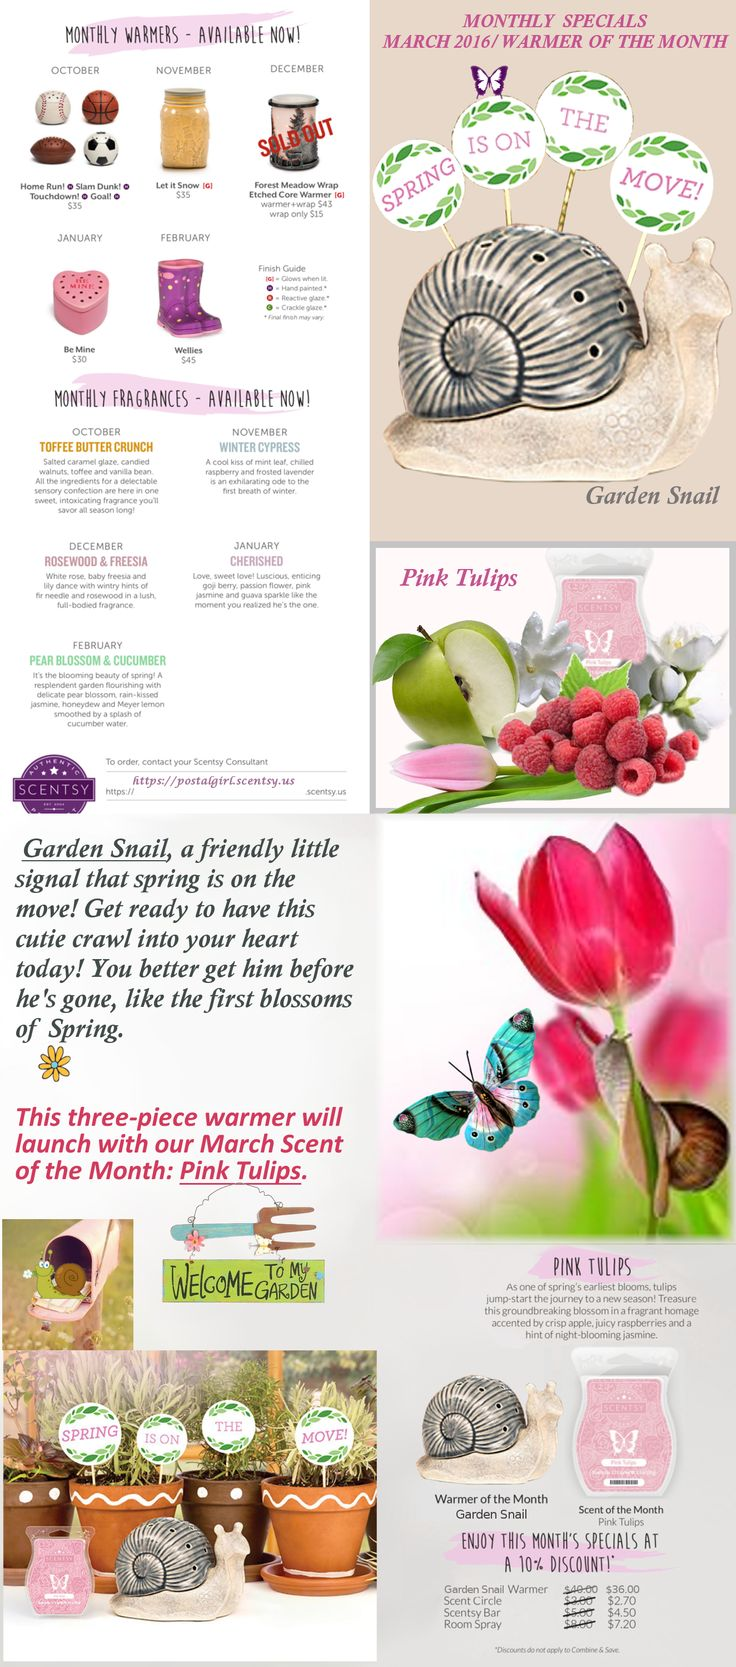 127 Best Scentsy Warmer Of The Month Images On Pinterest Scentsy Scent Warmers And Cake Truffles